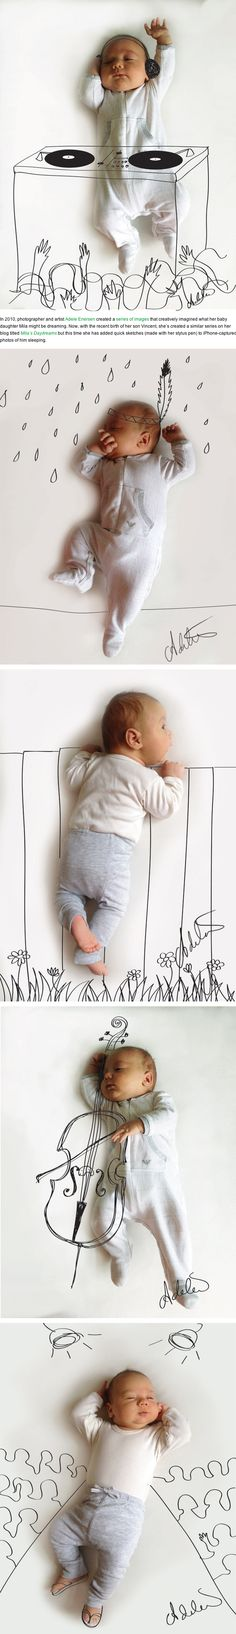 Cute Sketches Imagine What a Baby is Doing While Taking a Nap  잠자는 아기와 일러스트